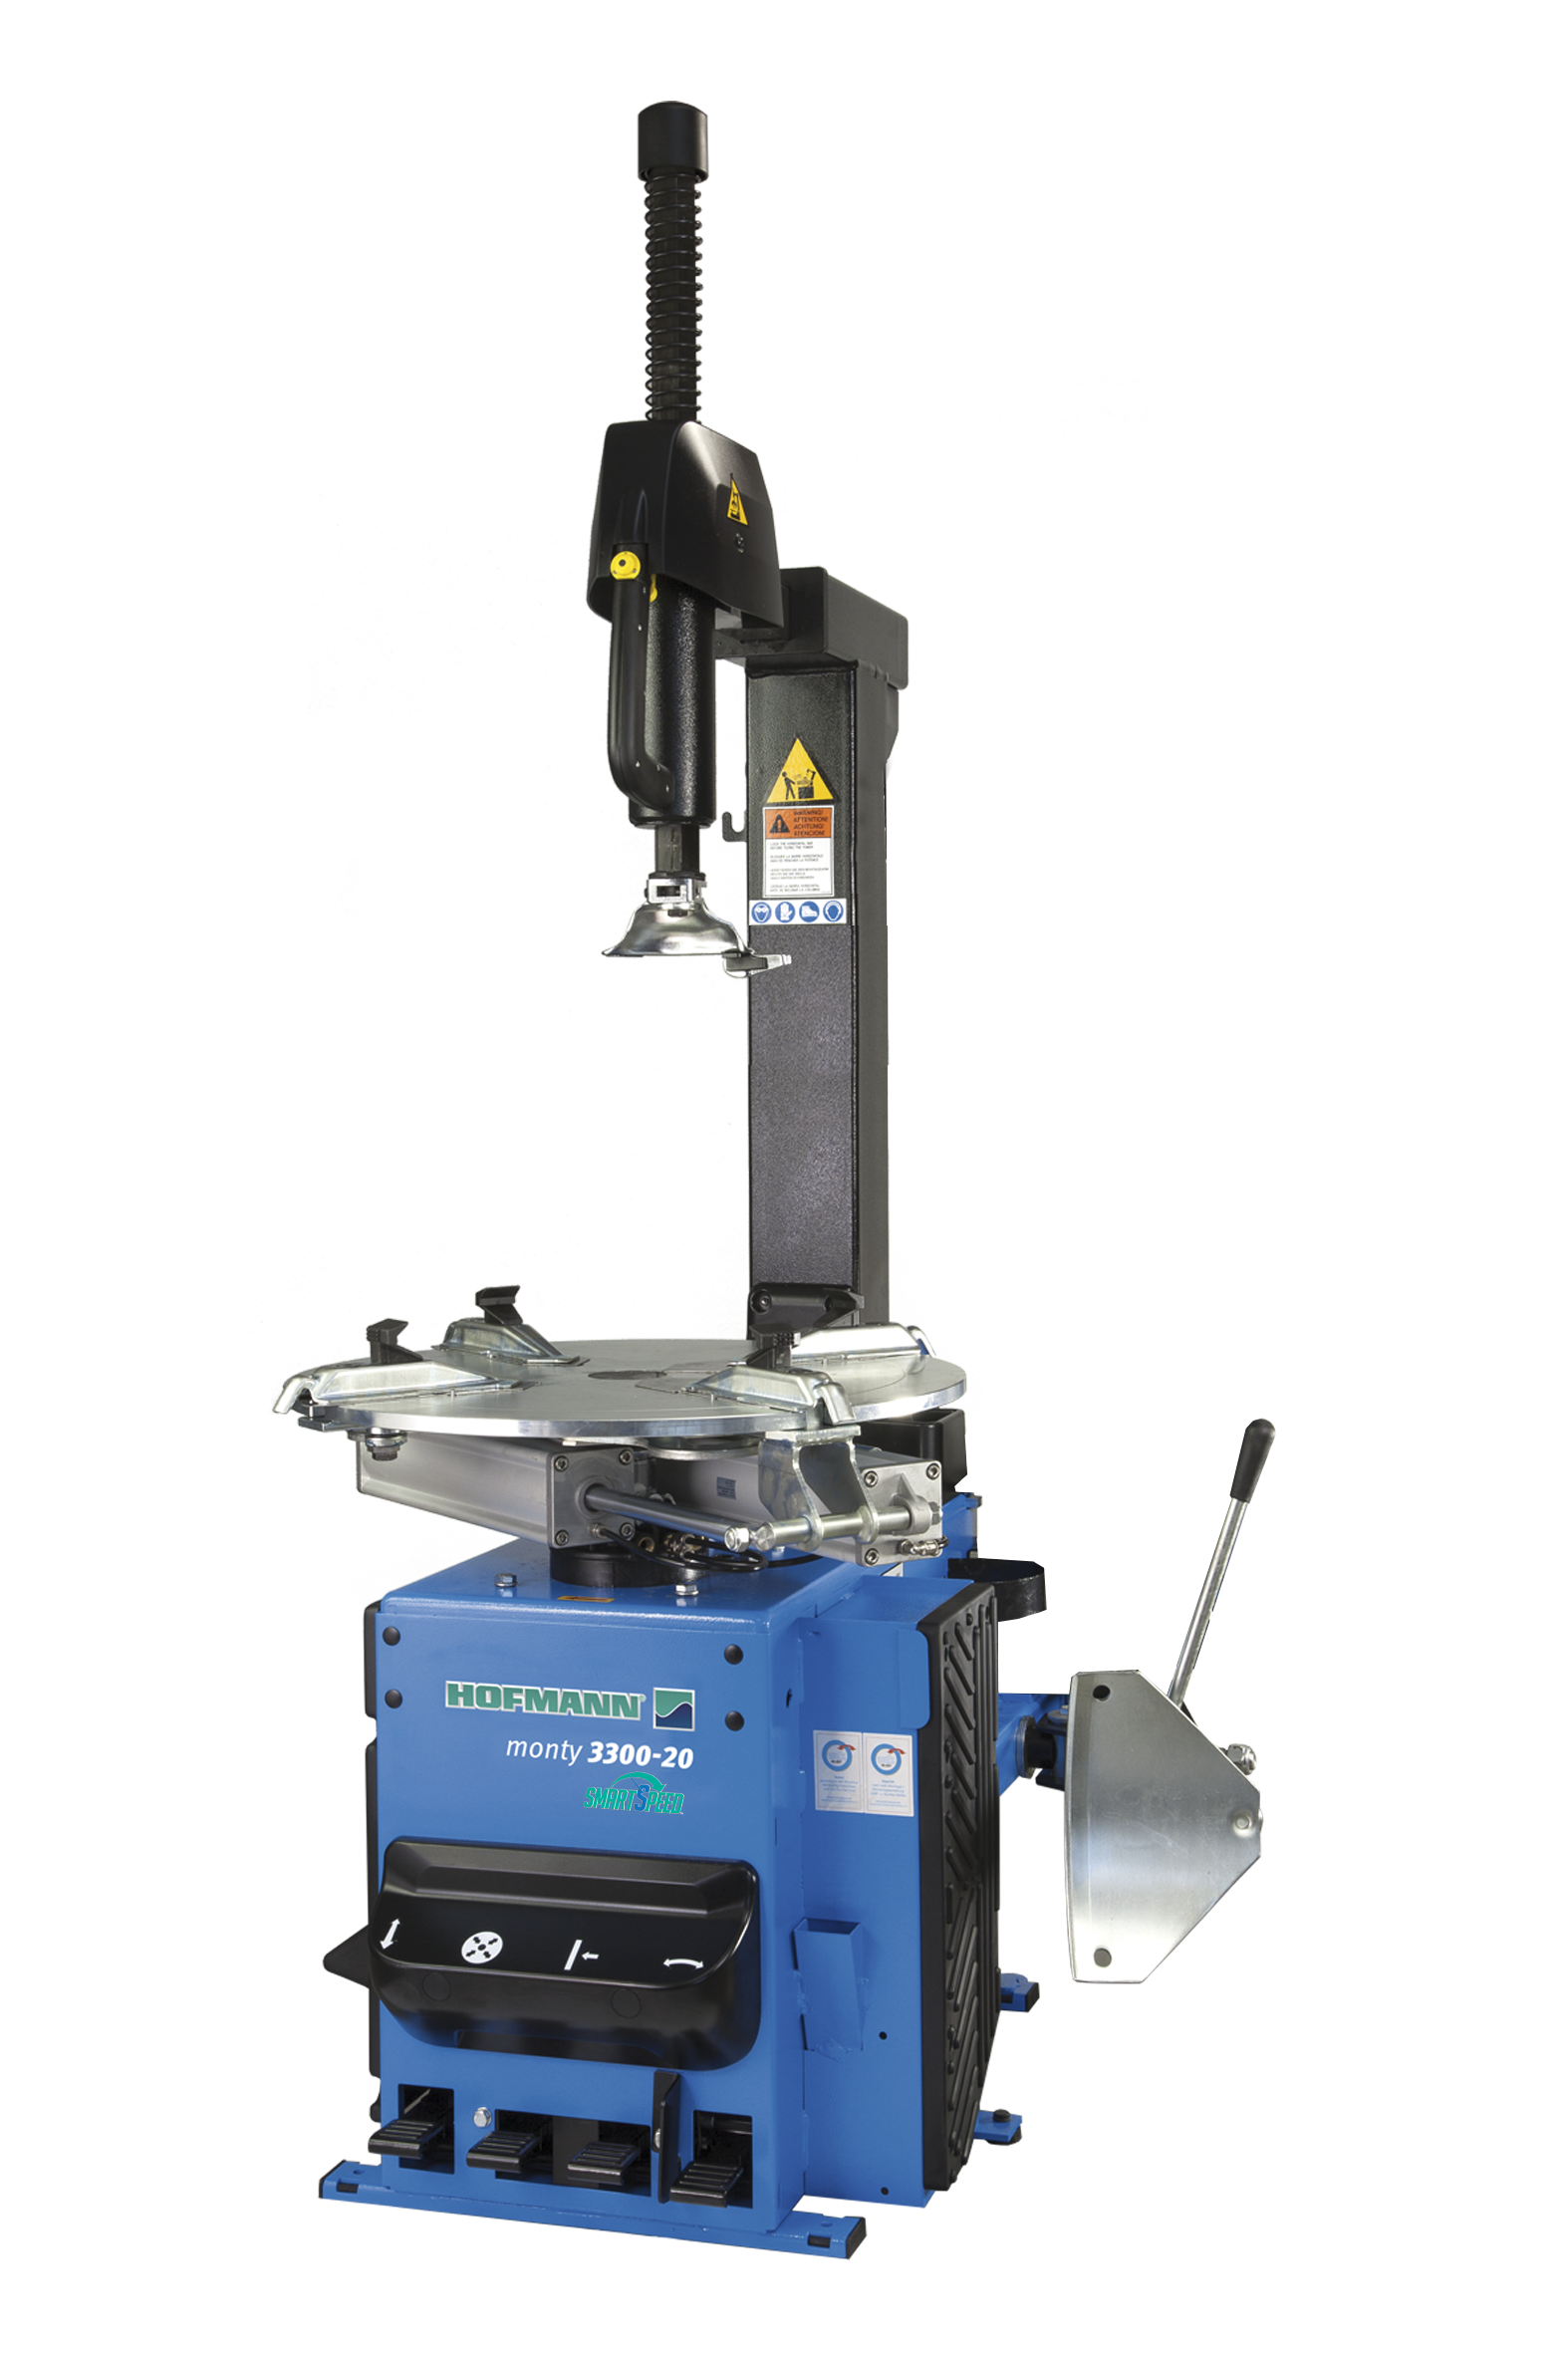 monty 3300 20 smart pneumatic tilt back post car tyre changer hofmann rh eu hofmann equipment com hofmann monty 1625 manual hofmann monty 3850 manual